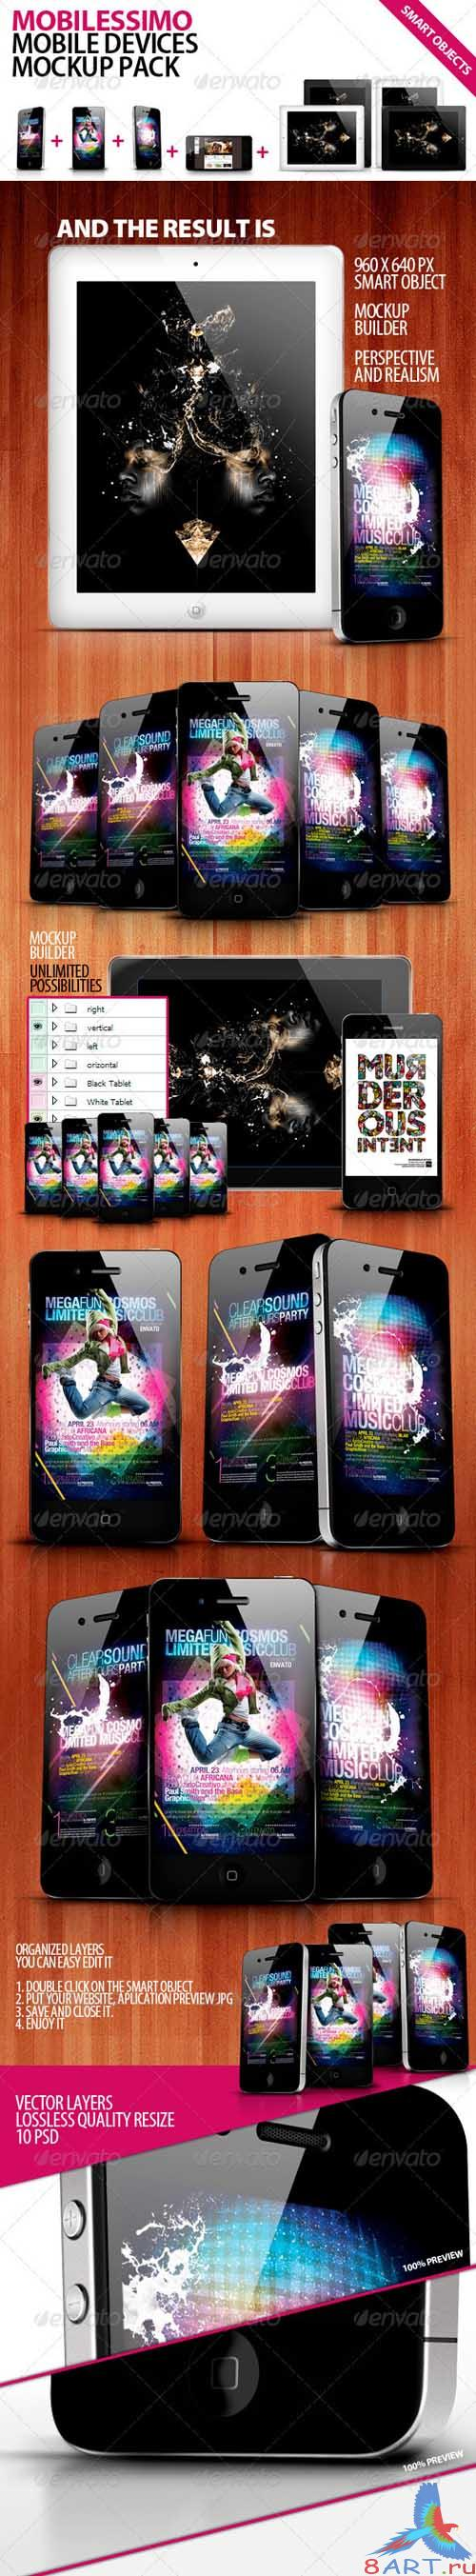 GraphicRiver Mobilisimo Mobile Phone & Mobile Pad Mock-ups